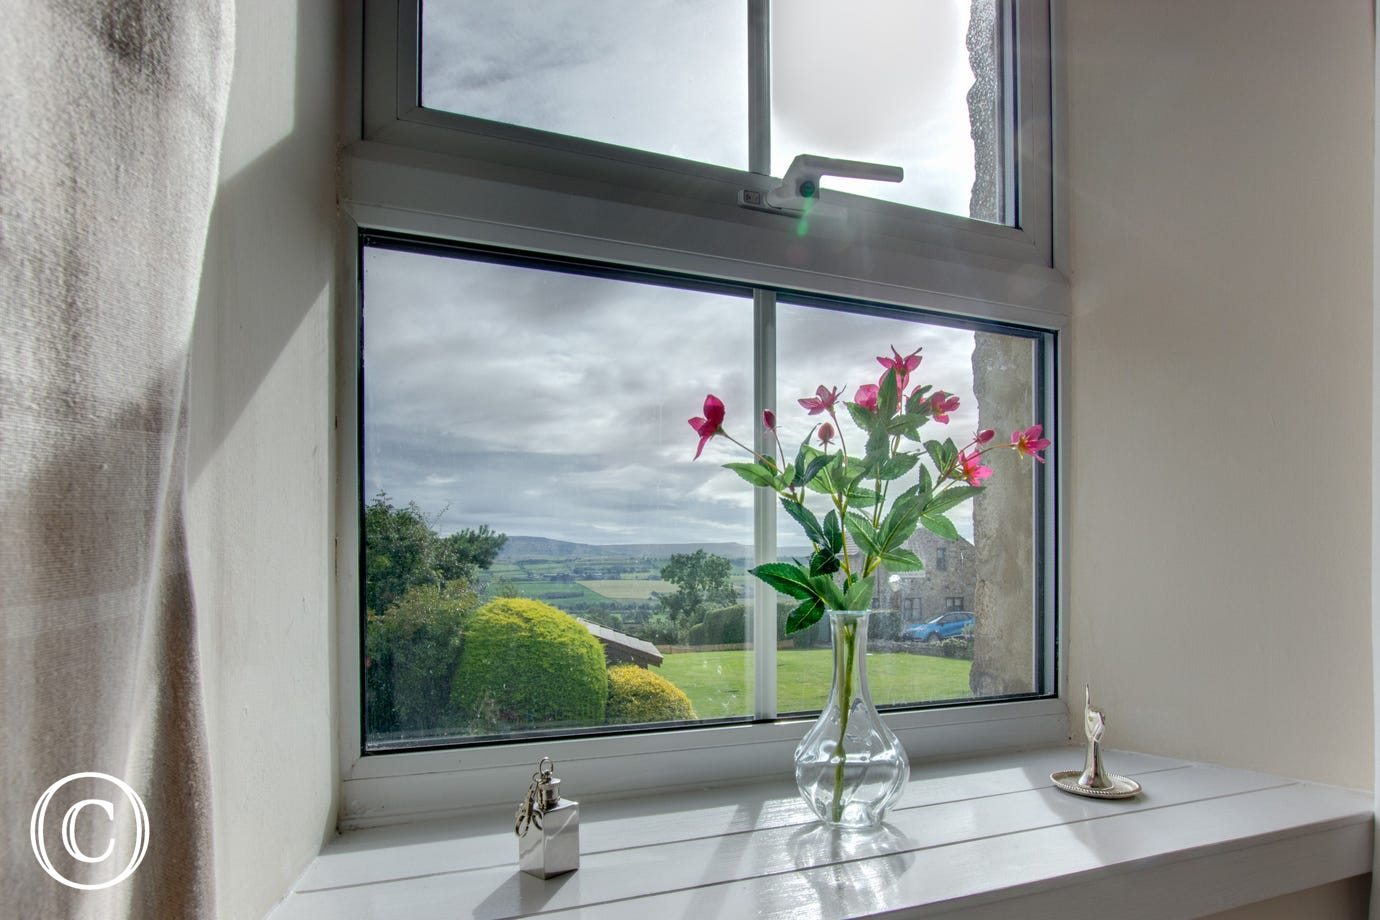 Stunning views through the windows